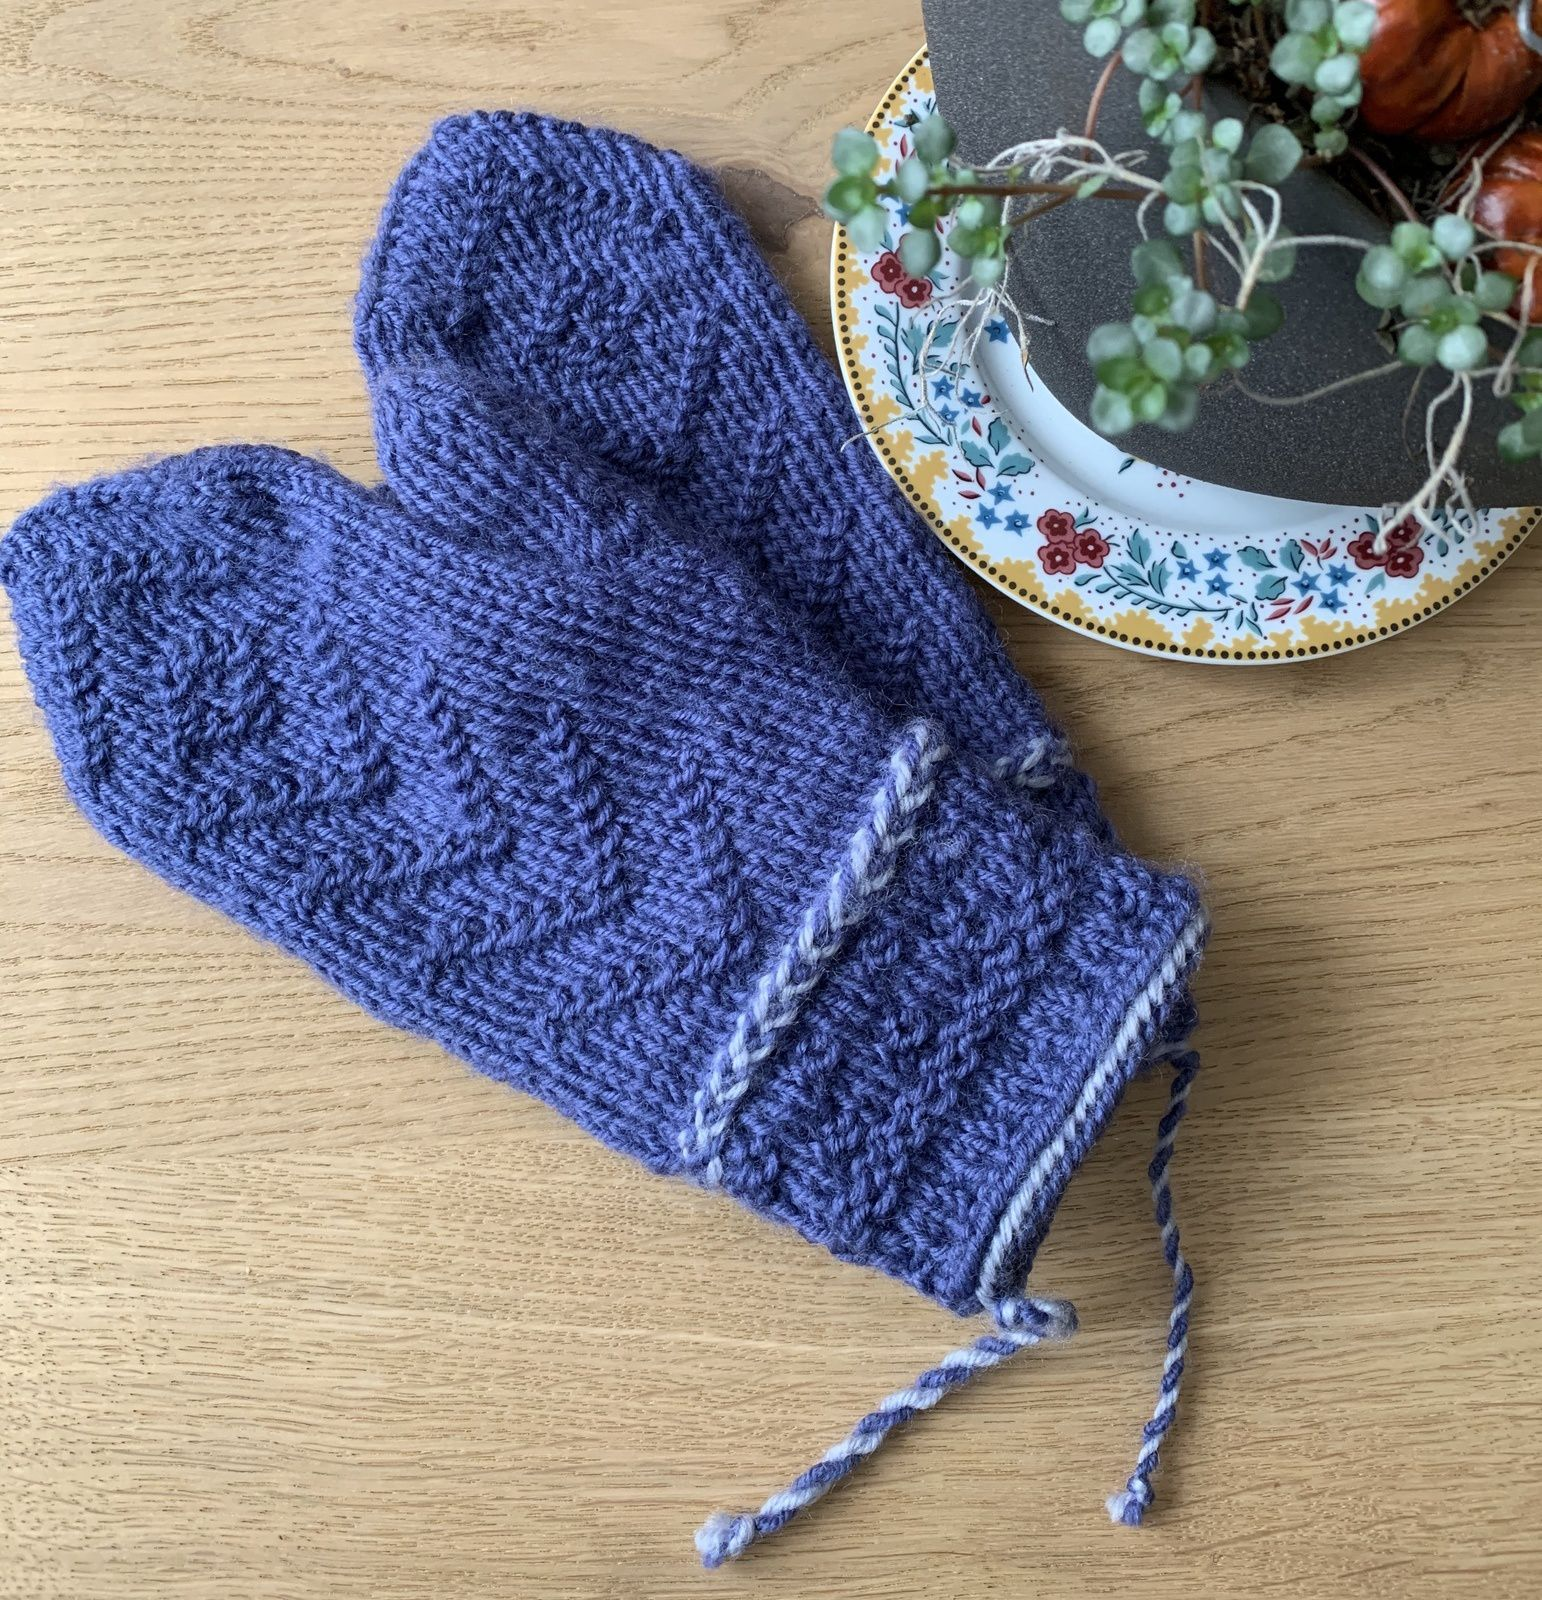 L'irrésistible moelleux du twined knitting